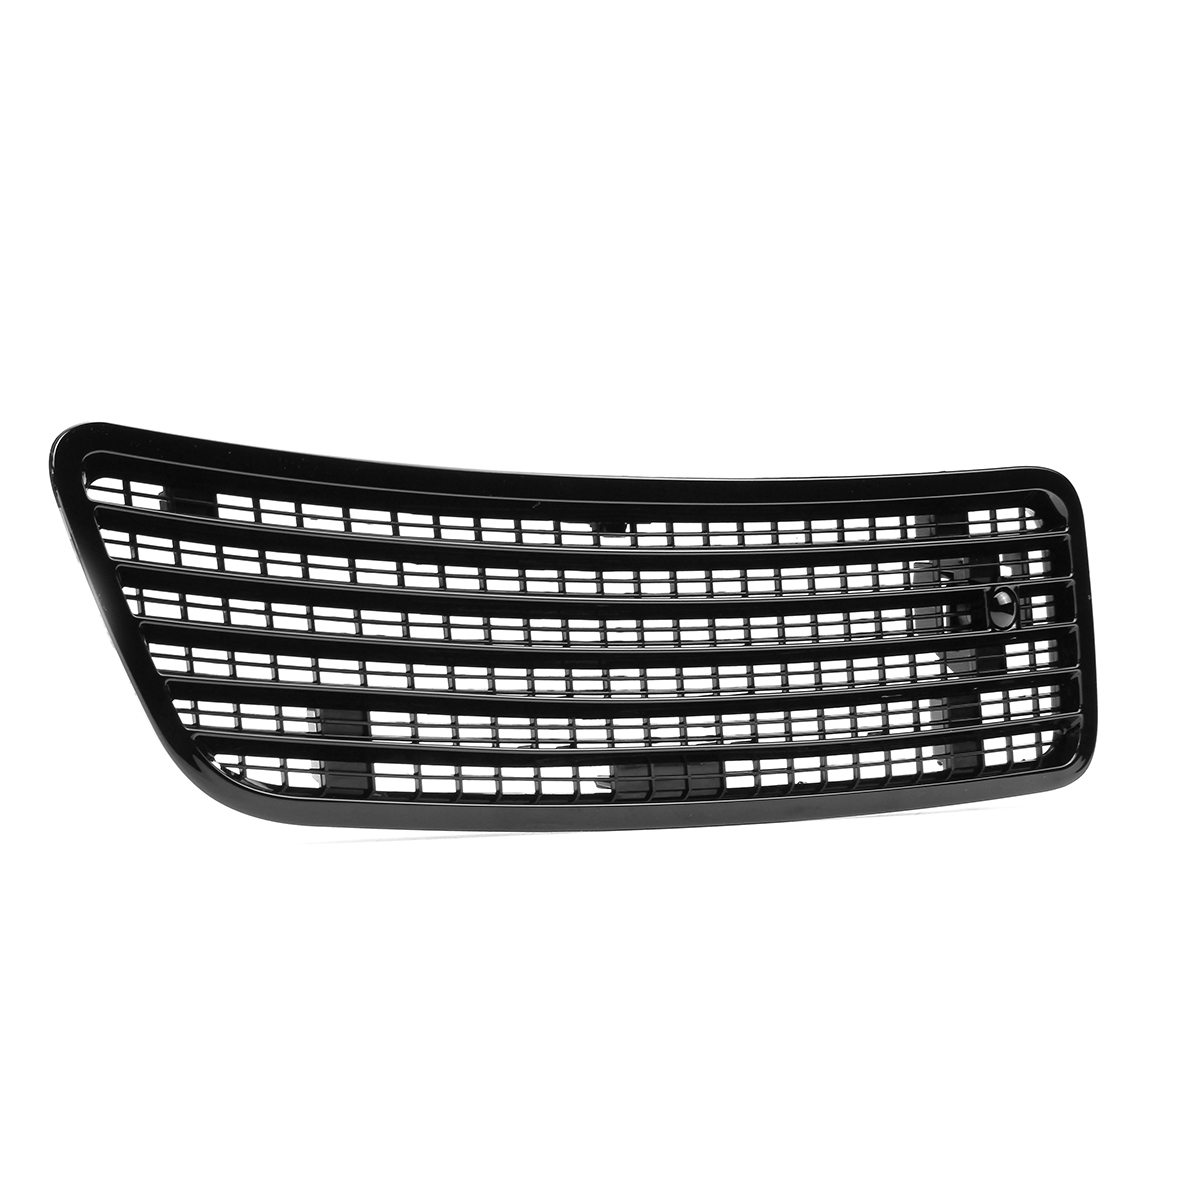 Left Right Hood Air Vent Grille Cover For Mercedes W221 S550 2007-2013